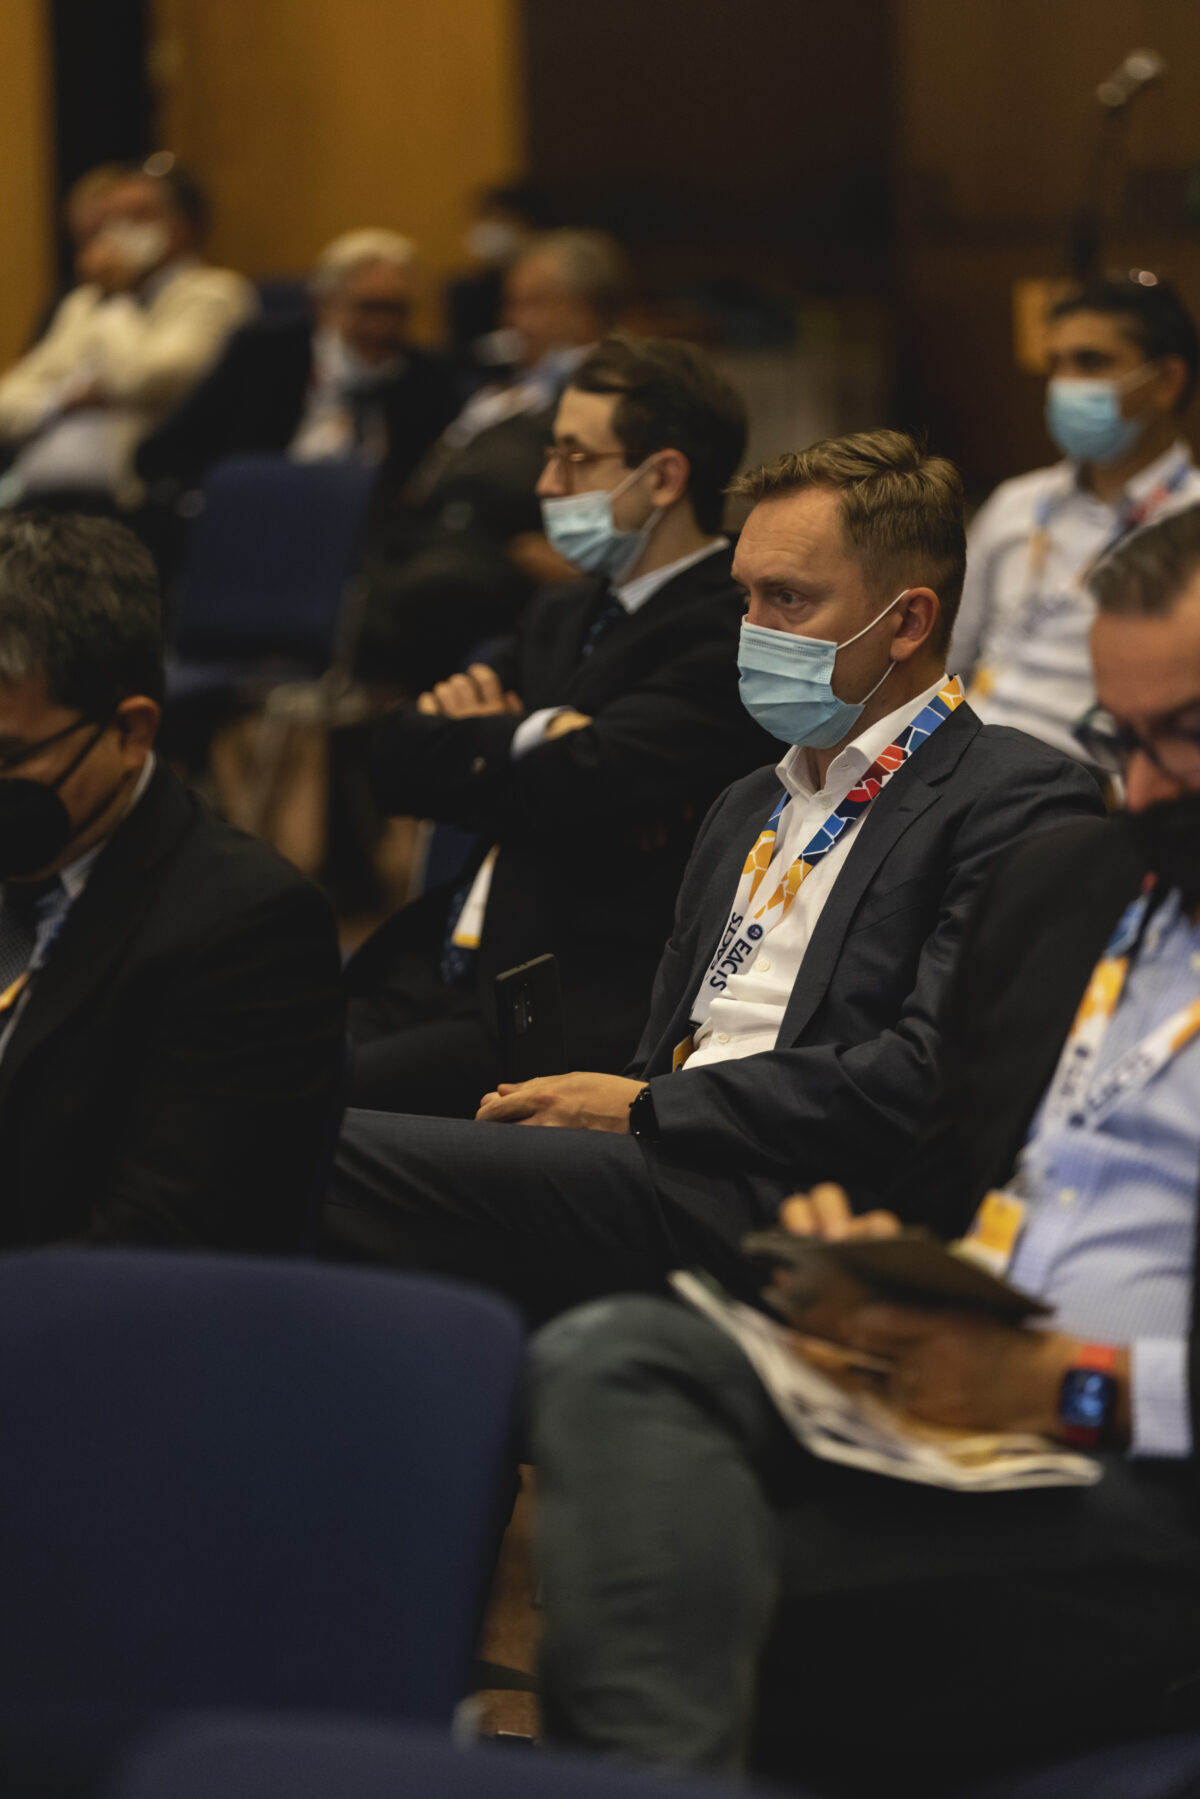 Thursday's gripping scientific programme at the 35th EACTS Annual Meeting